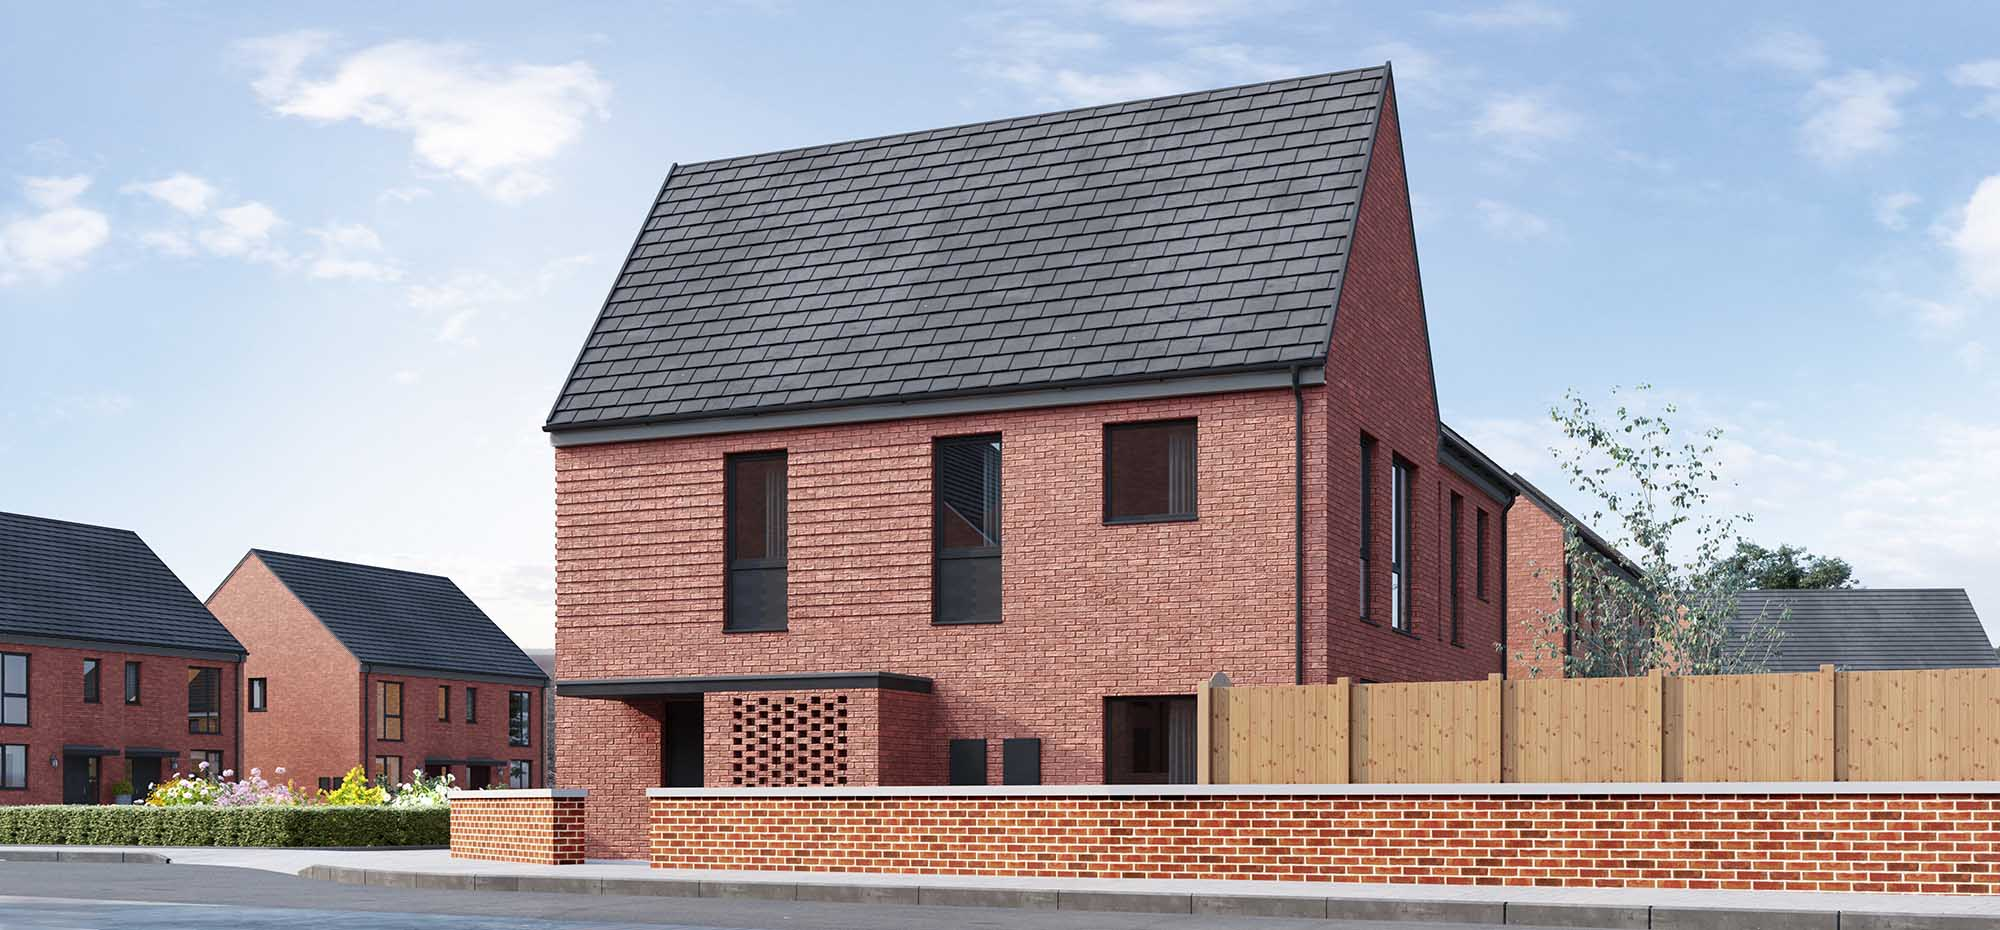 This image shows an external view of the Betony three bedroom, corner house from Shape Homes York.